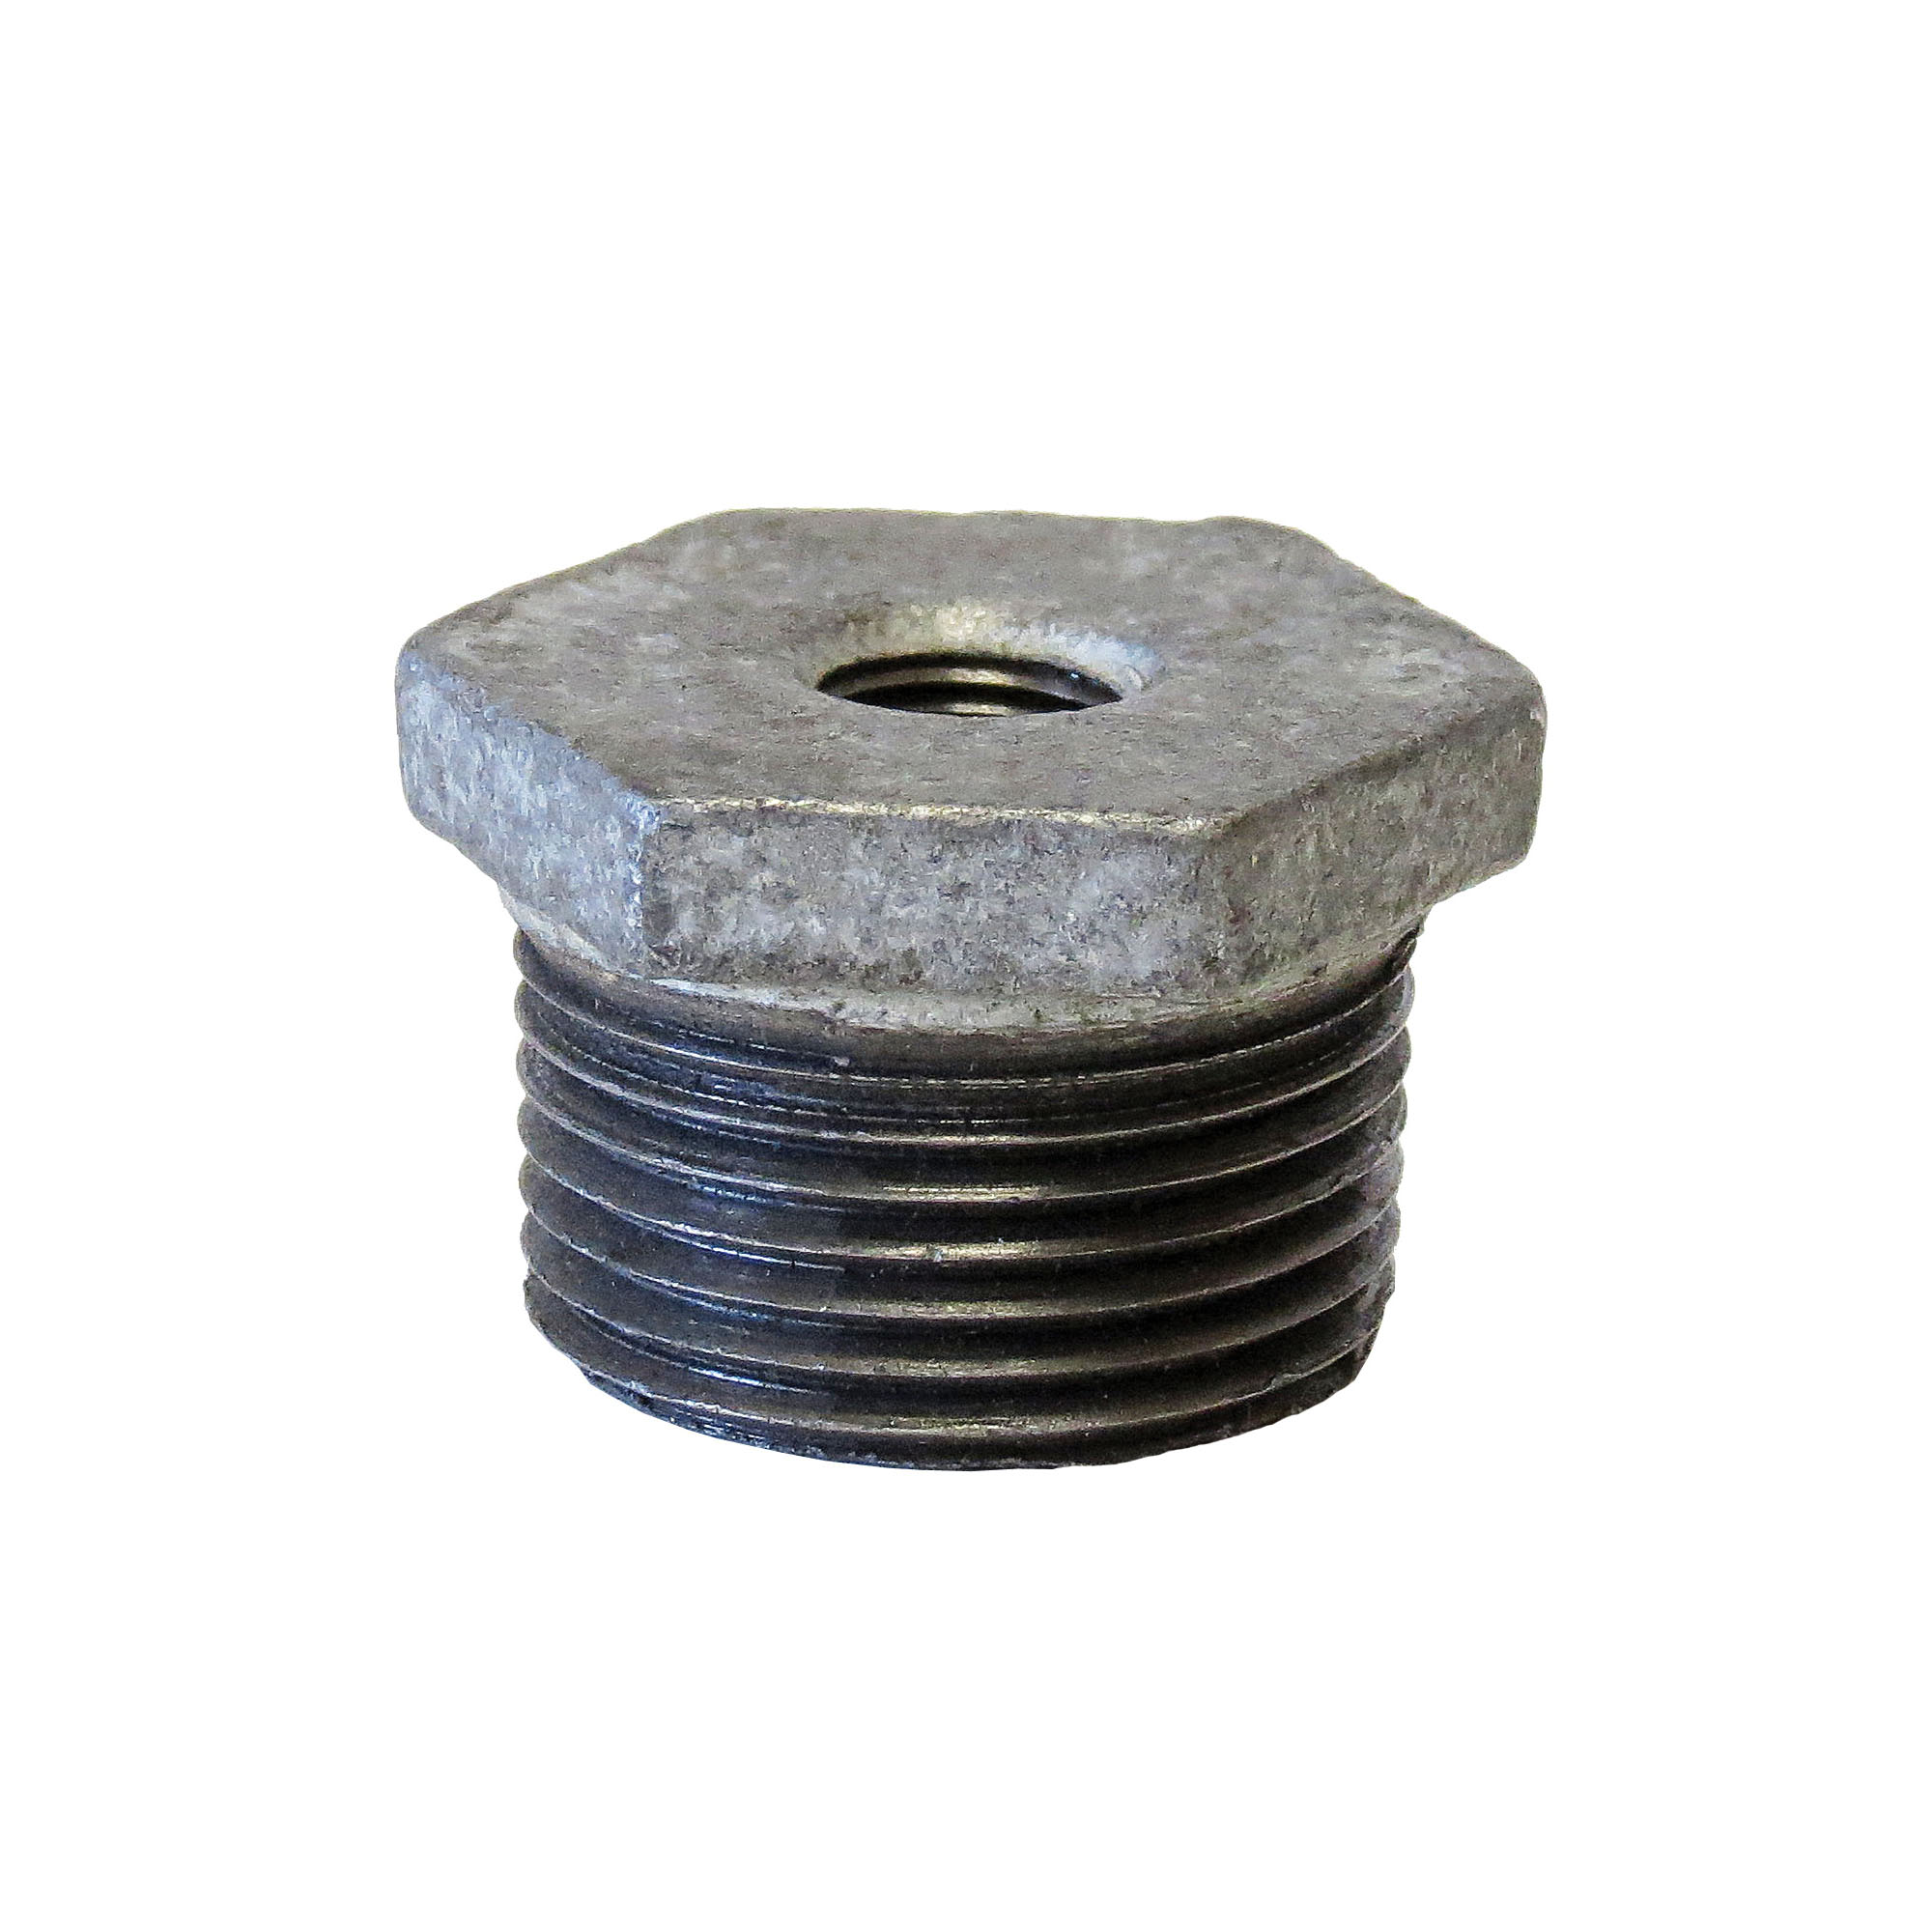 Anvil® 0319907804 FIG 383 Hex Head Pipe Bushing, 2 x 3/4 in, FNPT x MNPT, 150 lb, Cast Iron, Galvanized, Domestic